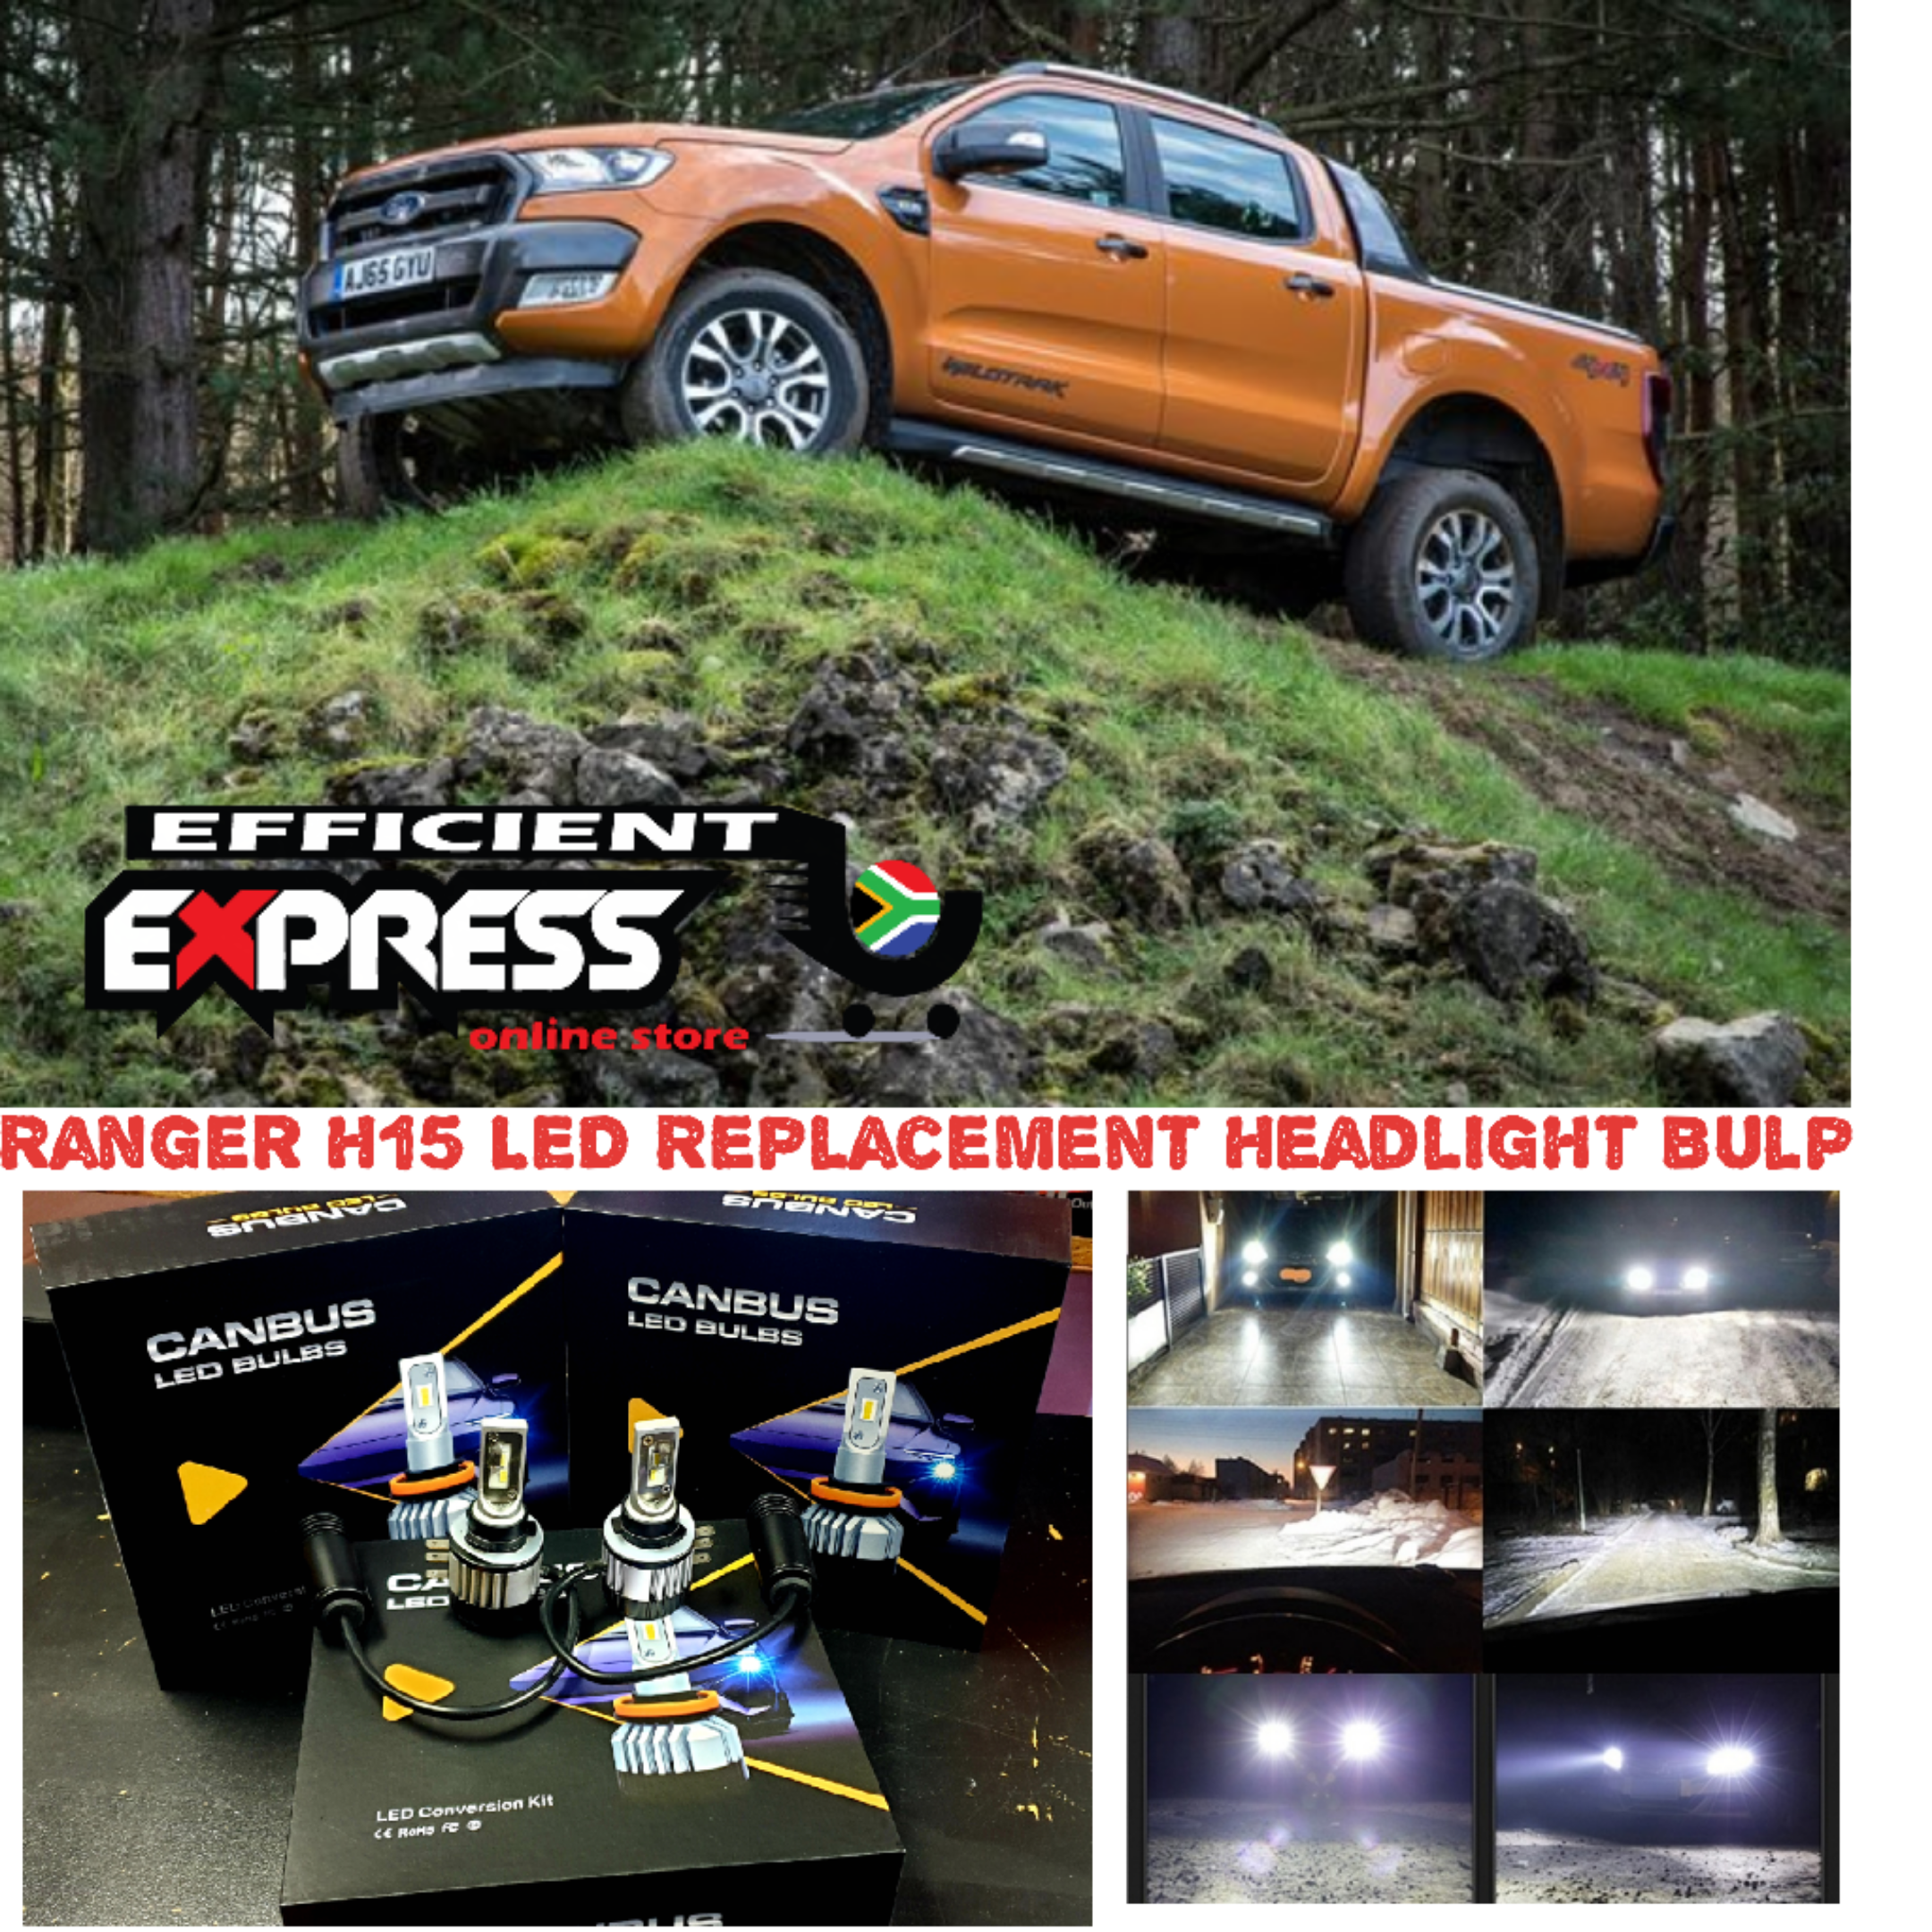 H15 Canbus Ready LED Headlights (High Beam/Brights)